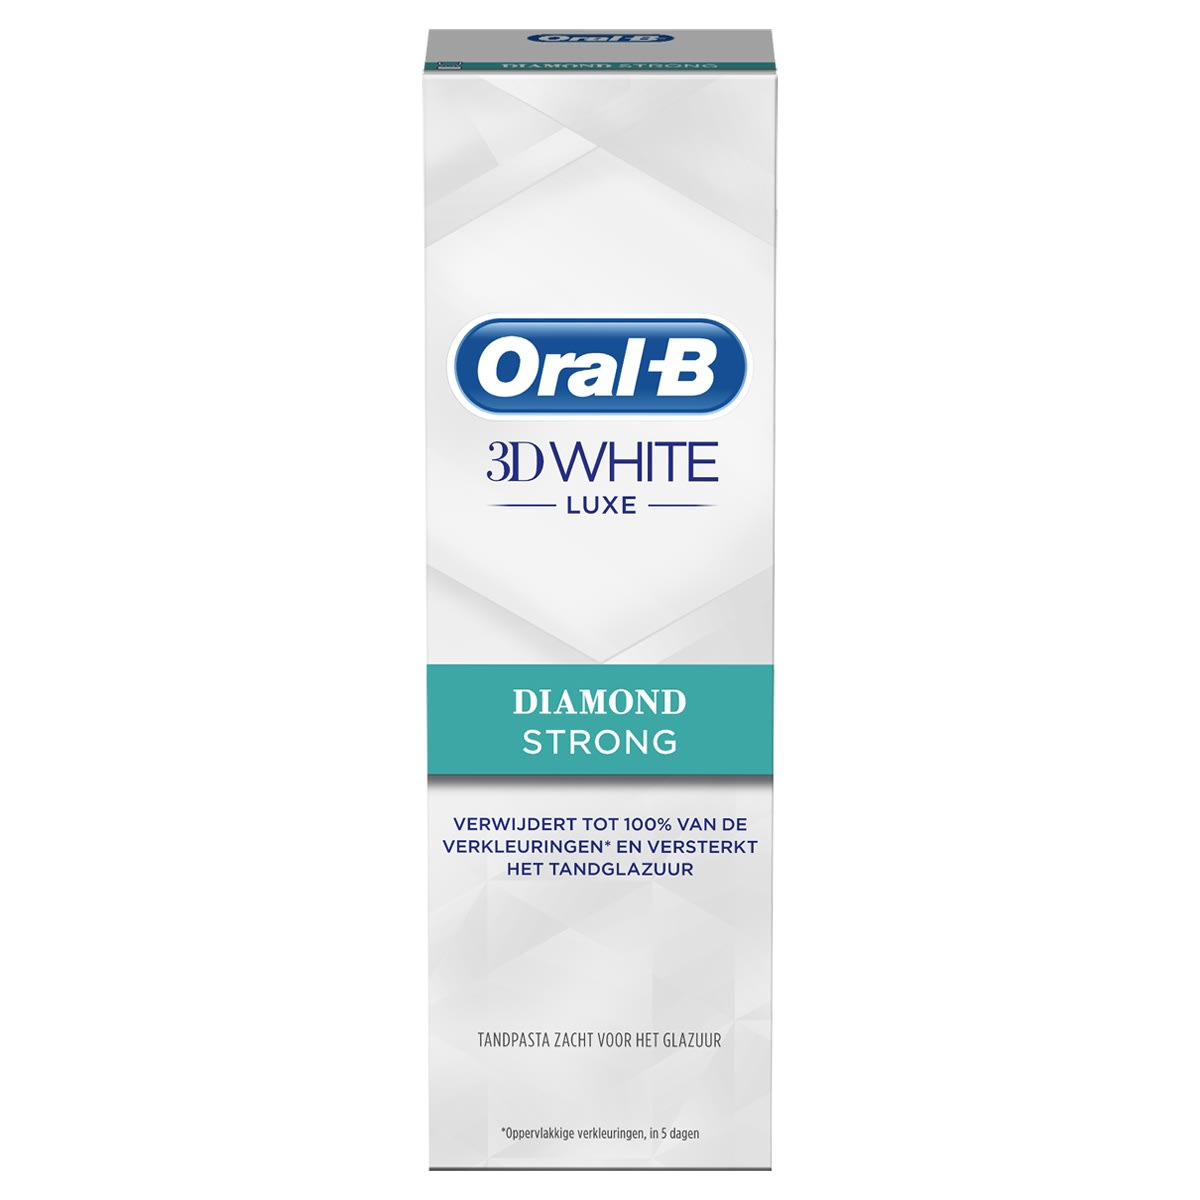 Oral-B 3D White Luxe Diamond Strong Tandpasta 75ml